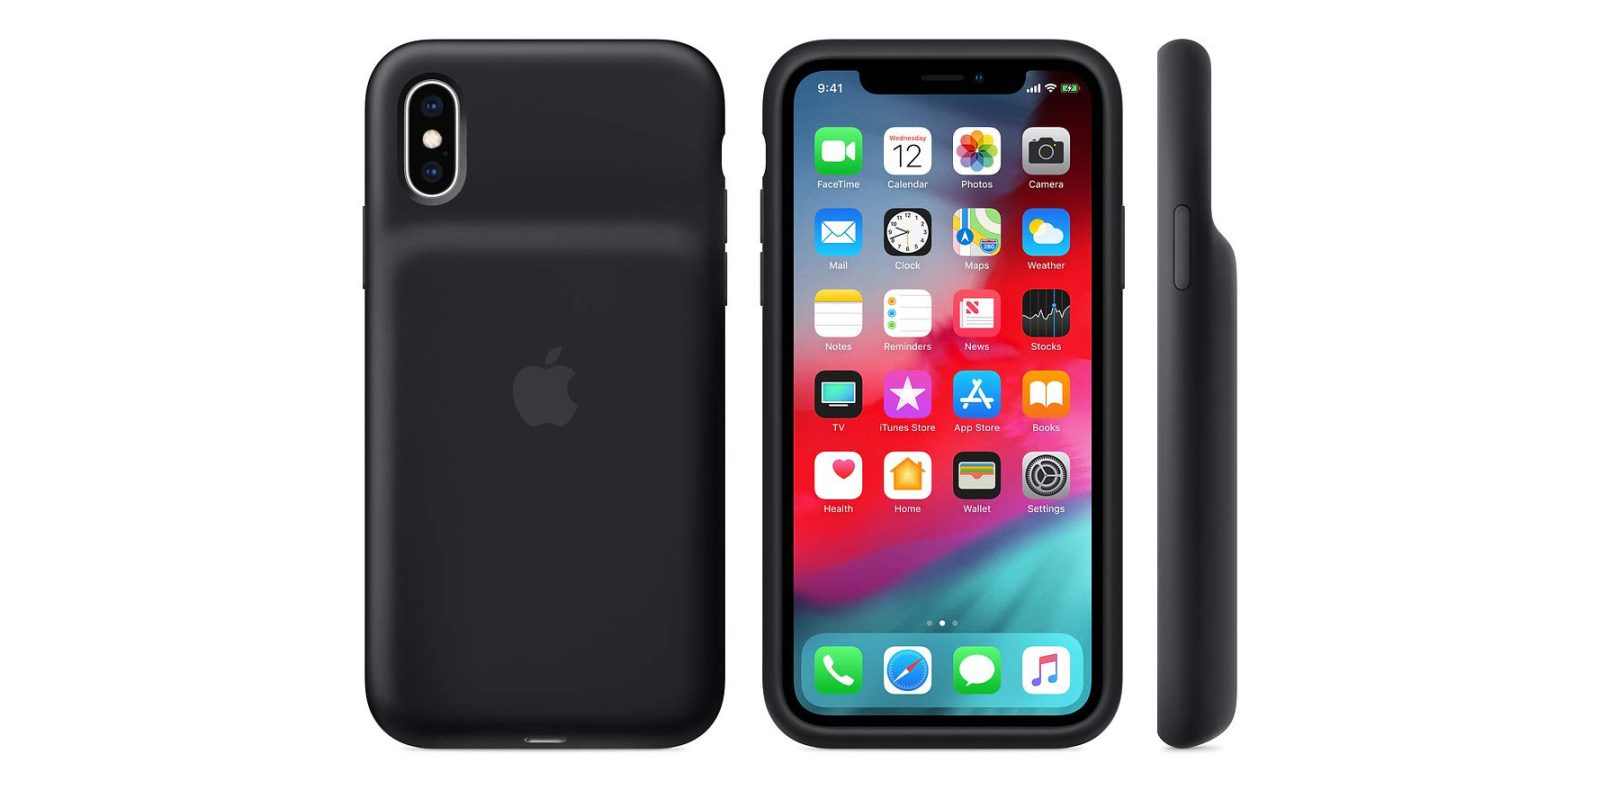 Apple Smart Battery Case for iPhone XS hits Amazon low at $102 (Reg. $129)